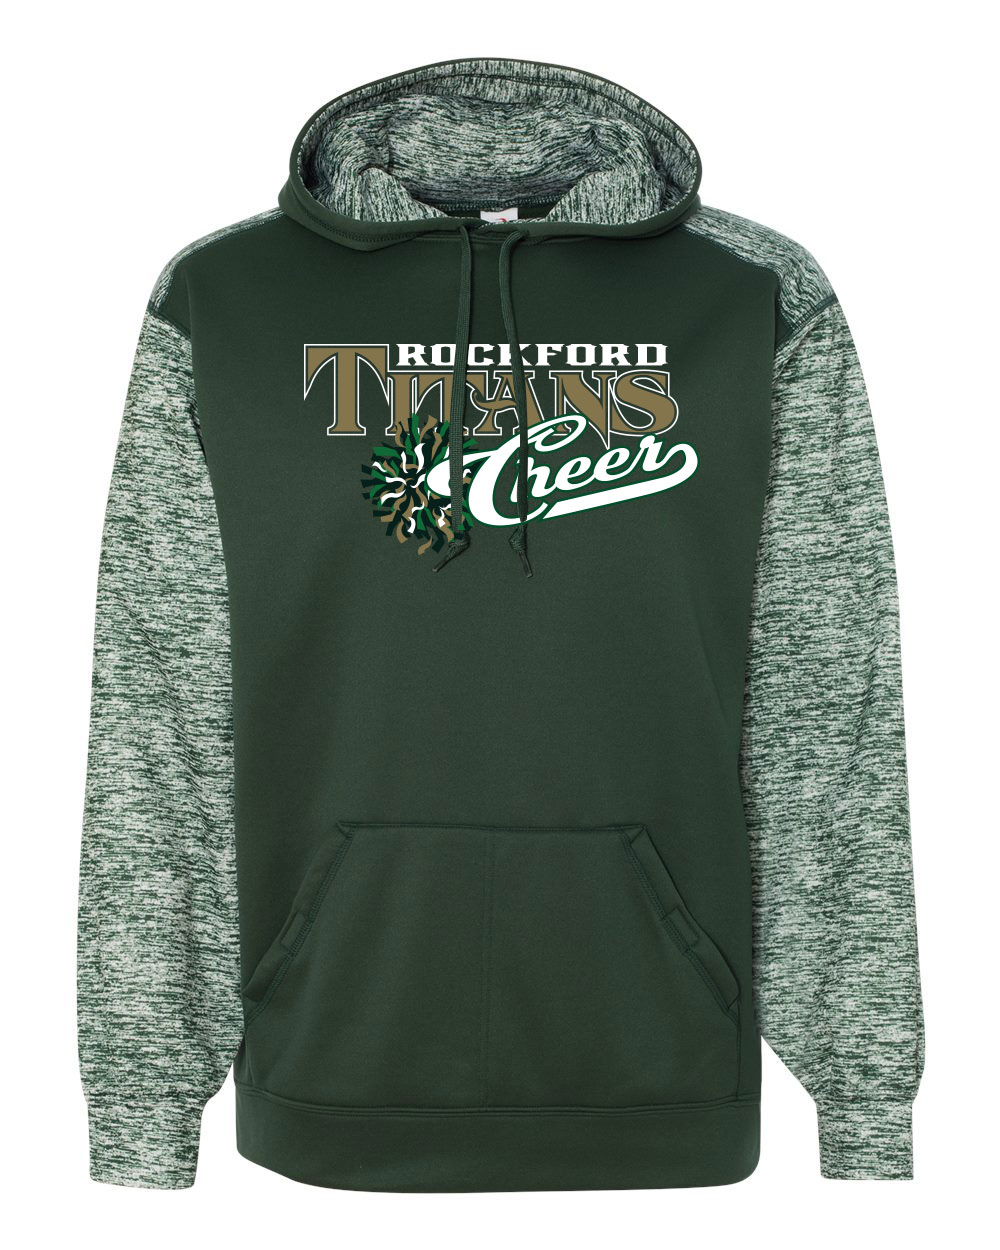 Badger_1462_Forest__Forest_Blend_Front_Highcheer